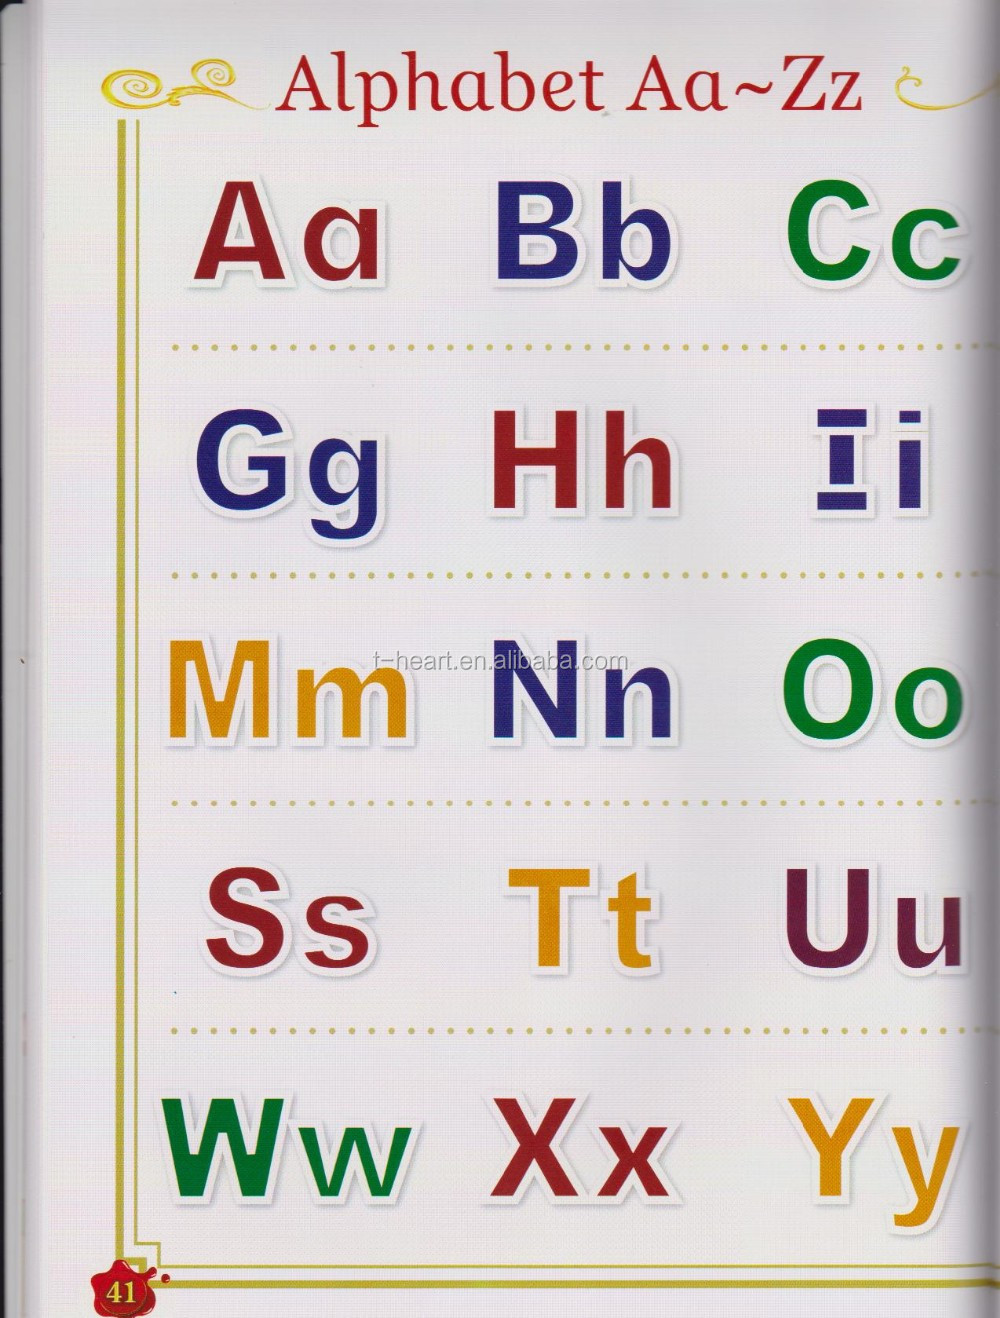 Wonderful Sound English book for children learning ABC